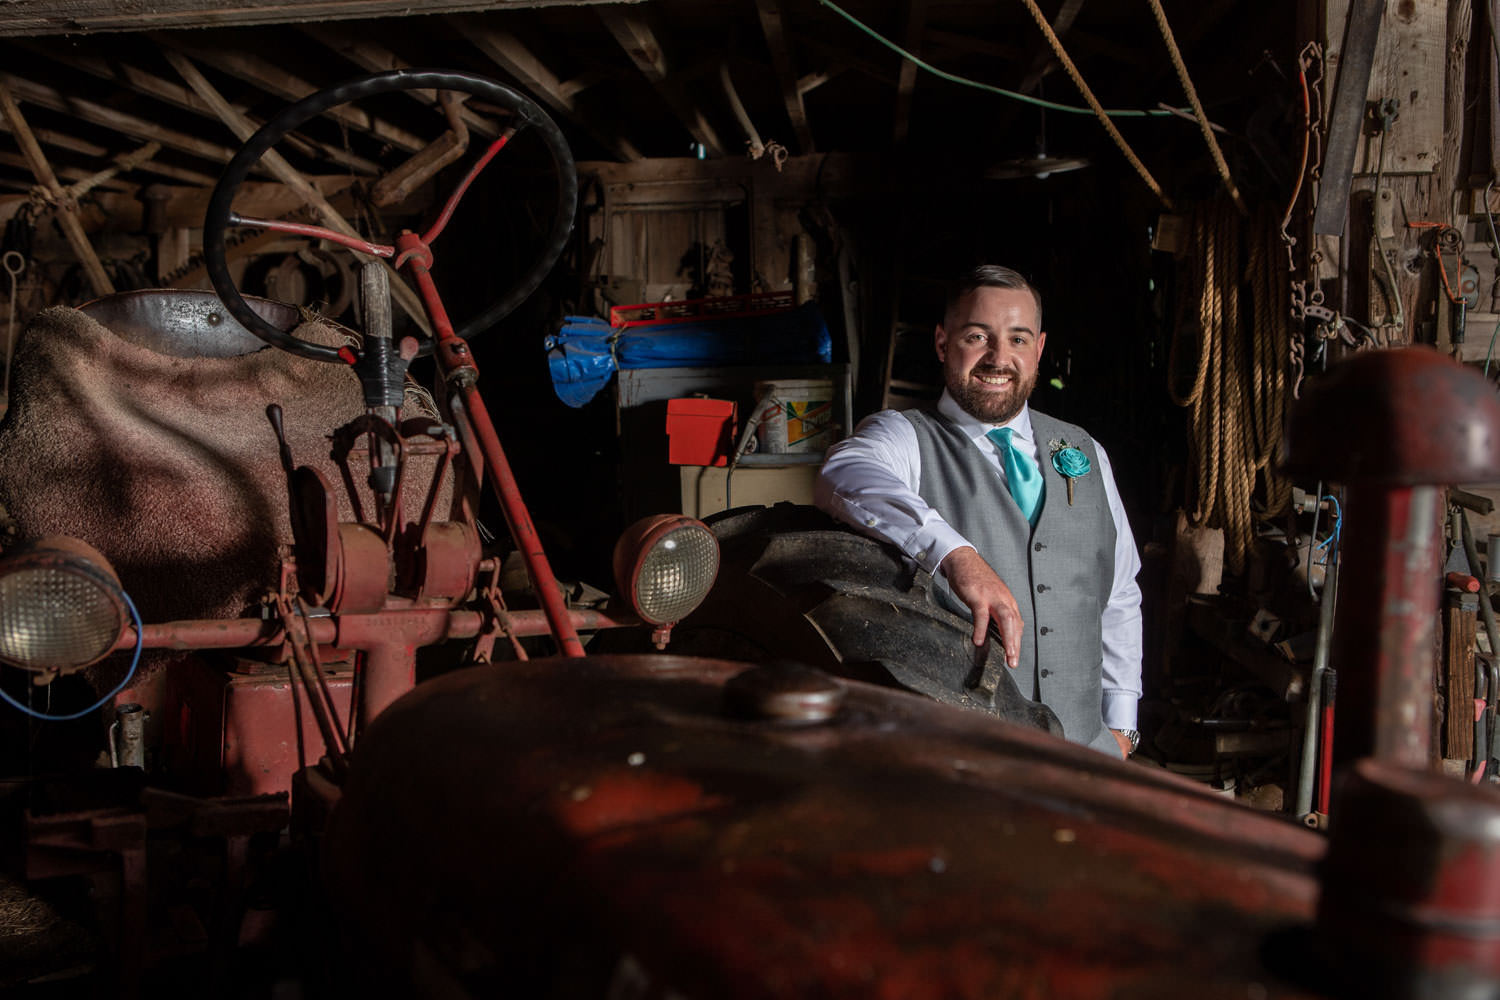 Groom leaning on tractor tire in barn